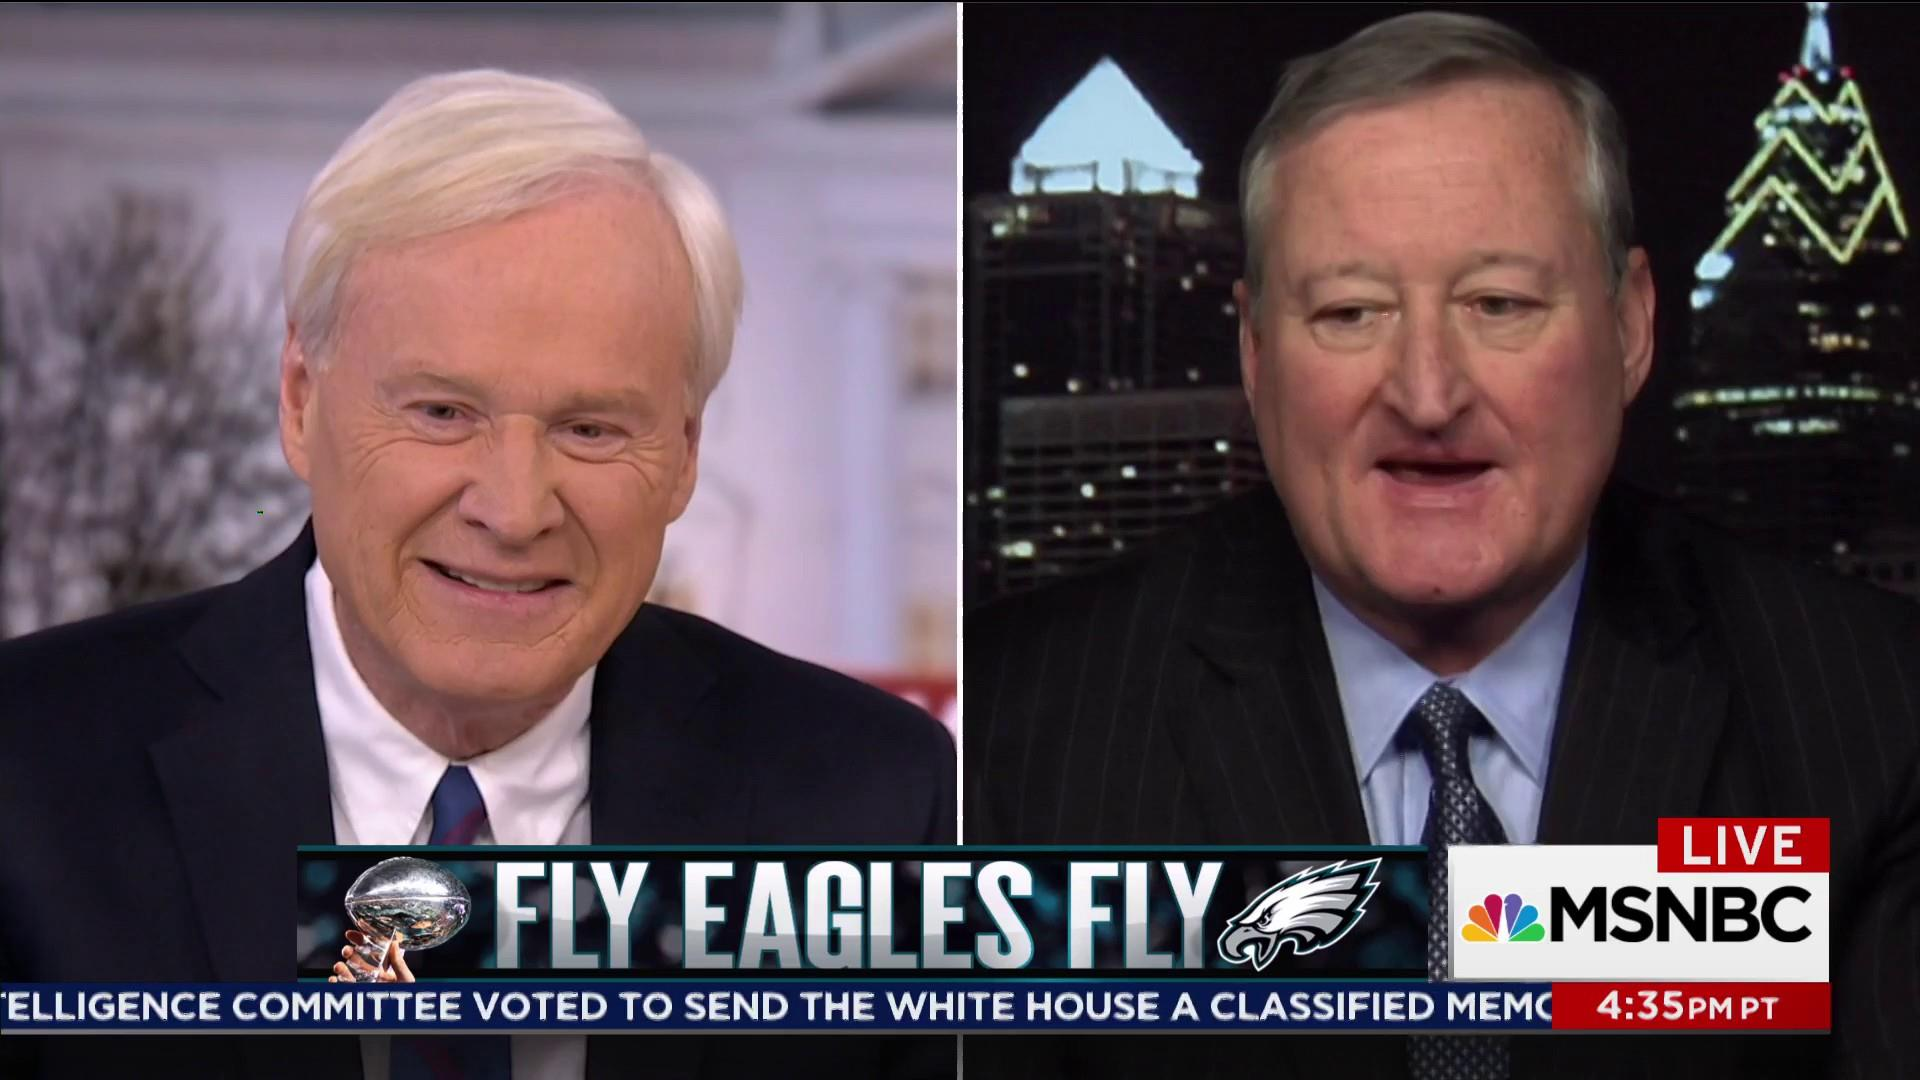 Mayor Kenney: 'How 'Bout Our Eagles!'